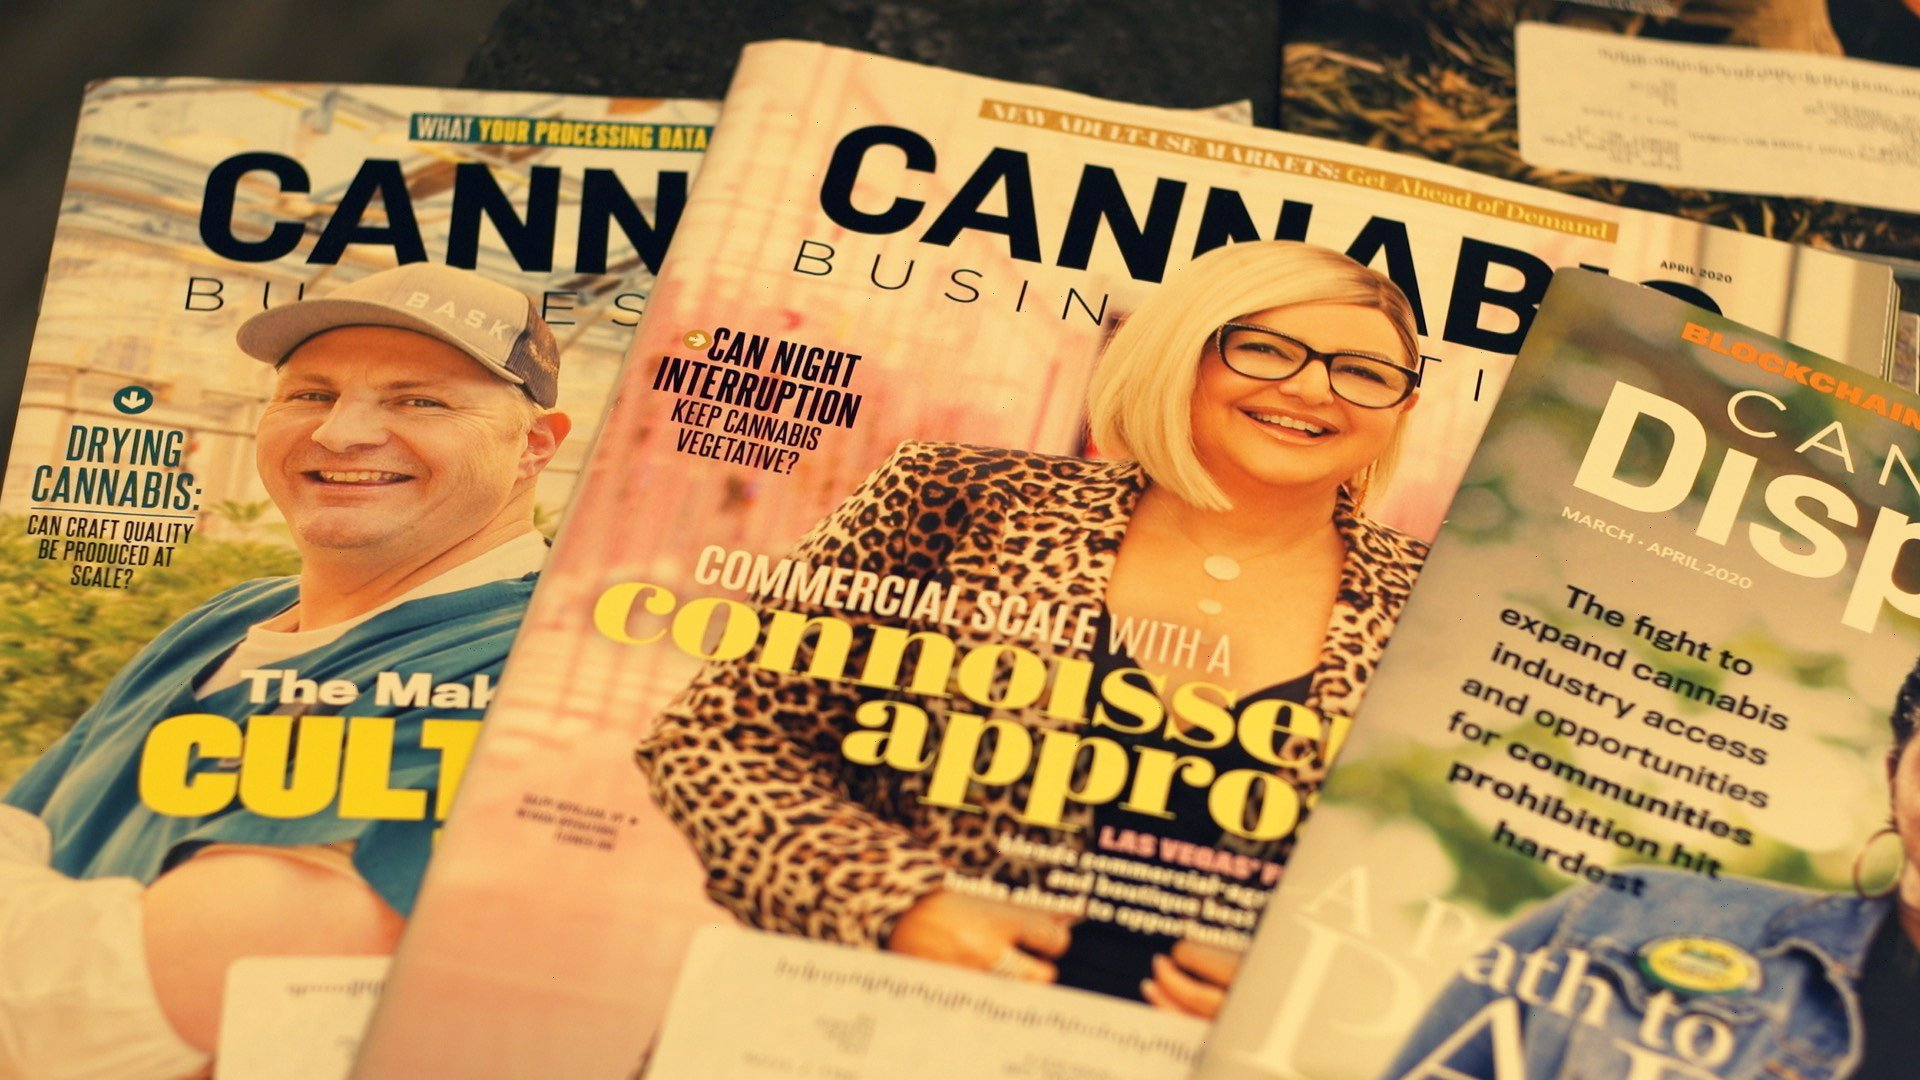 Cannabis magazines are on display in the office of Matt Stacy